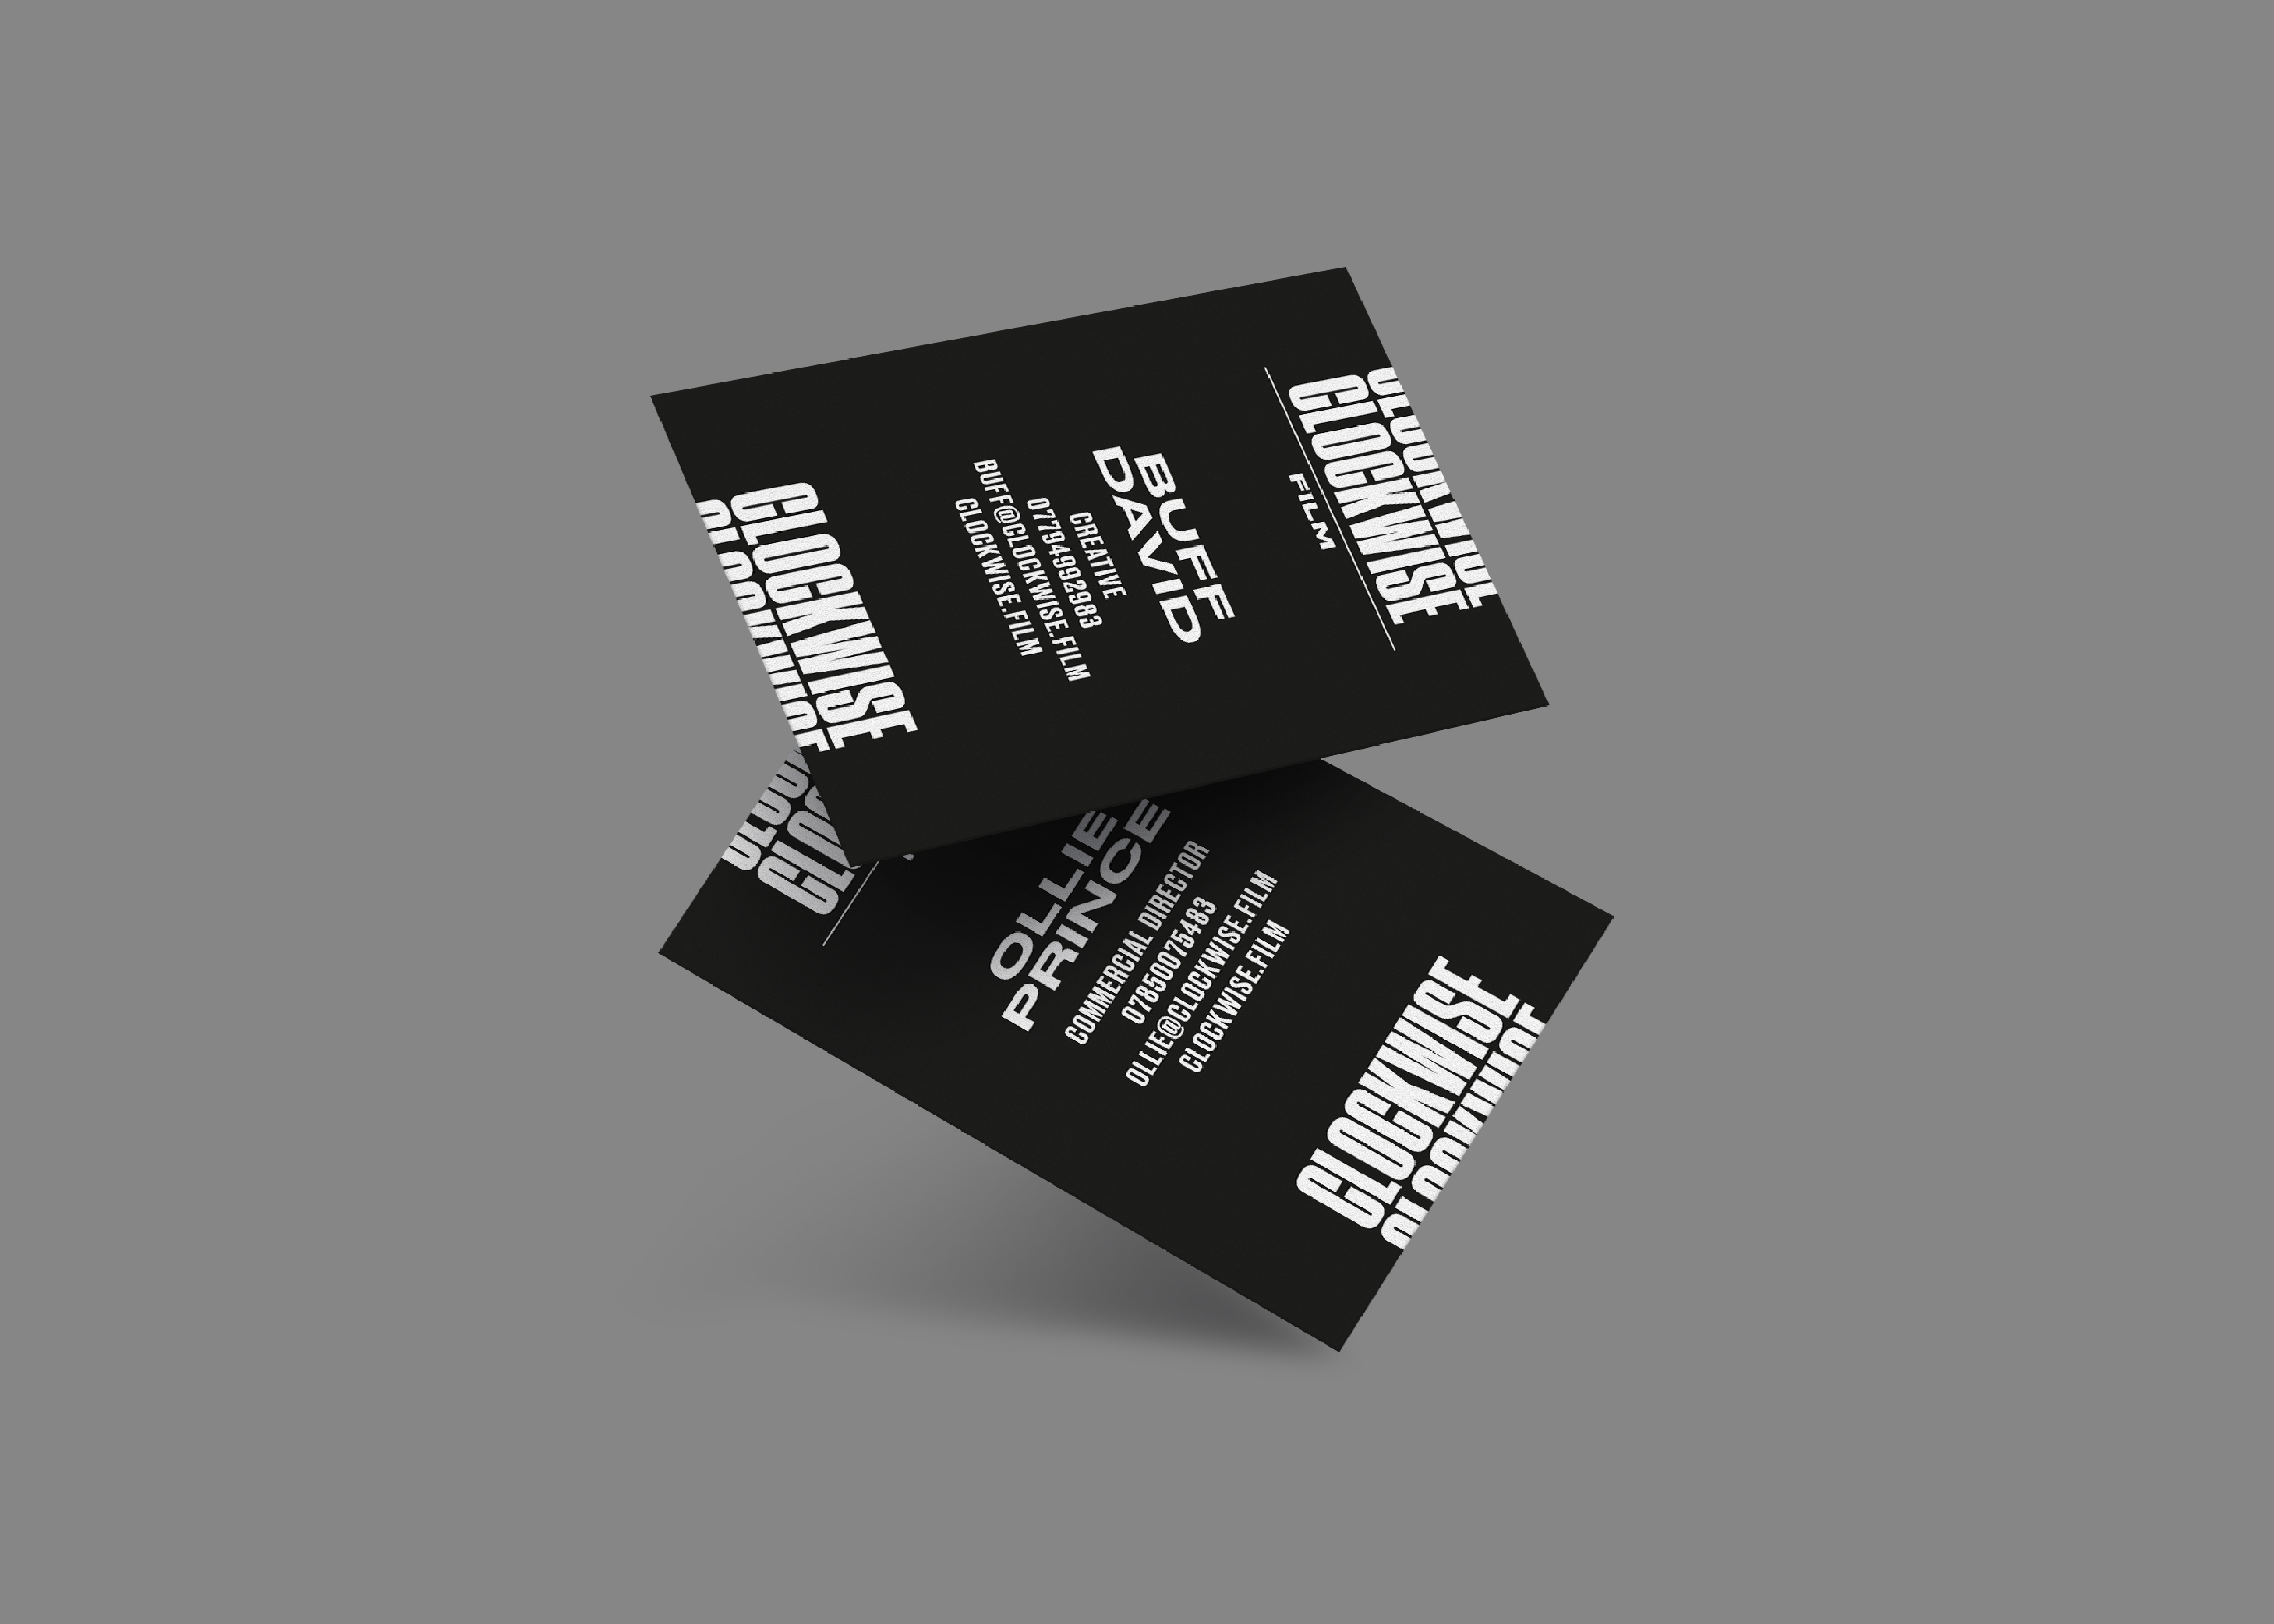 Business card artwork for Clockwise by Fiasco Design